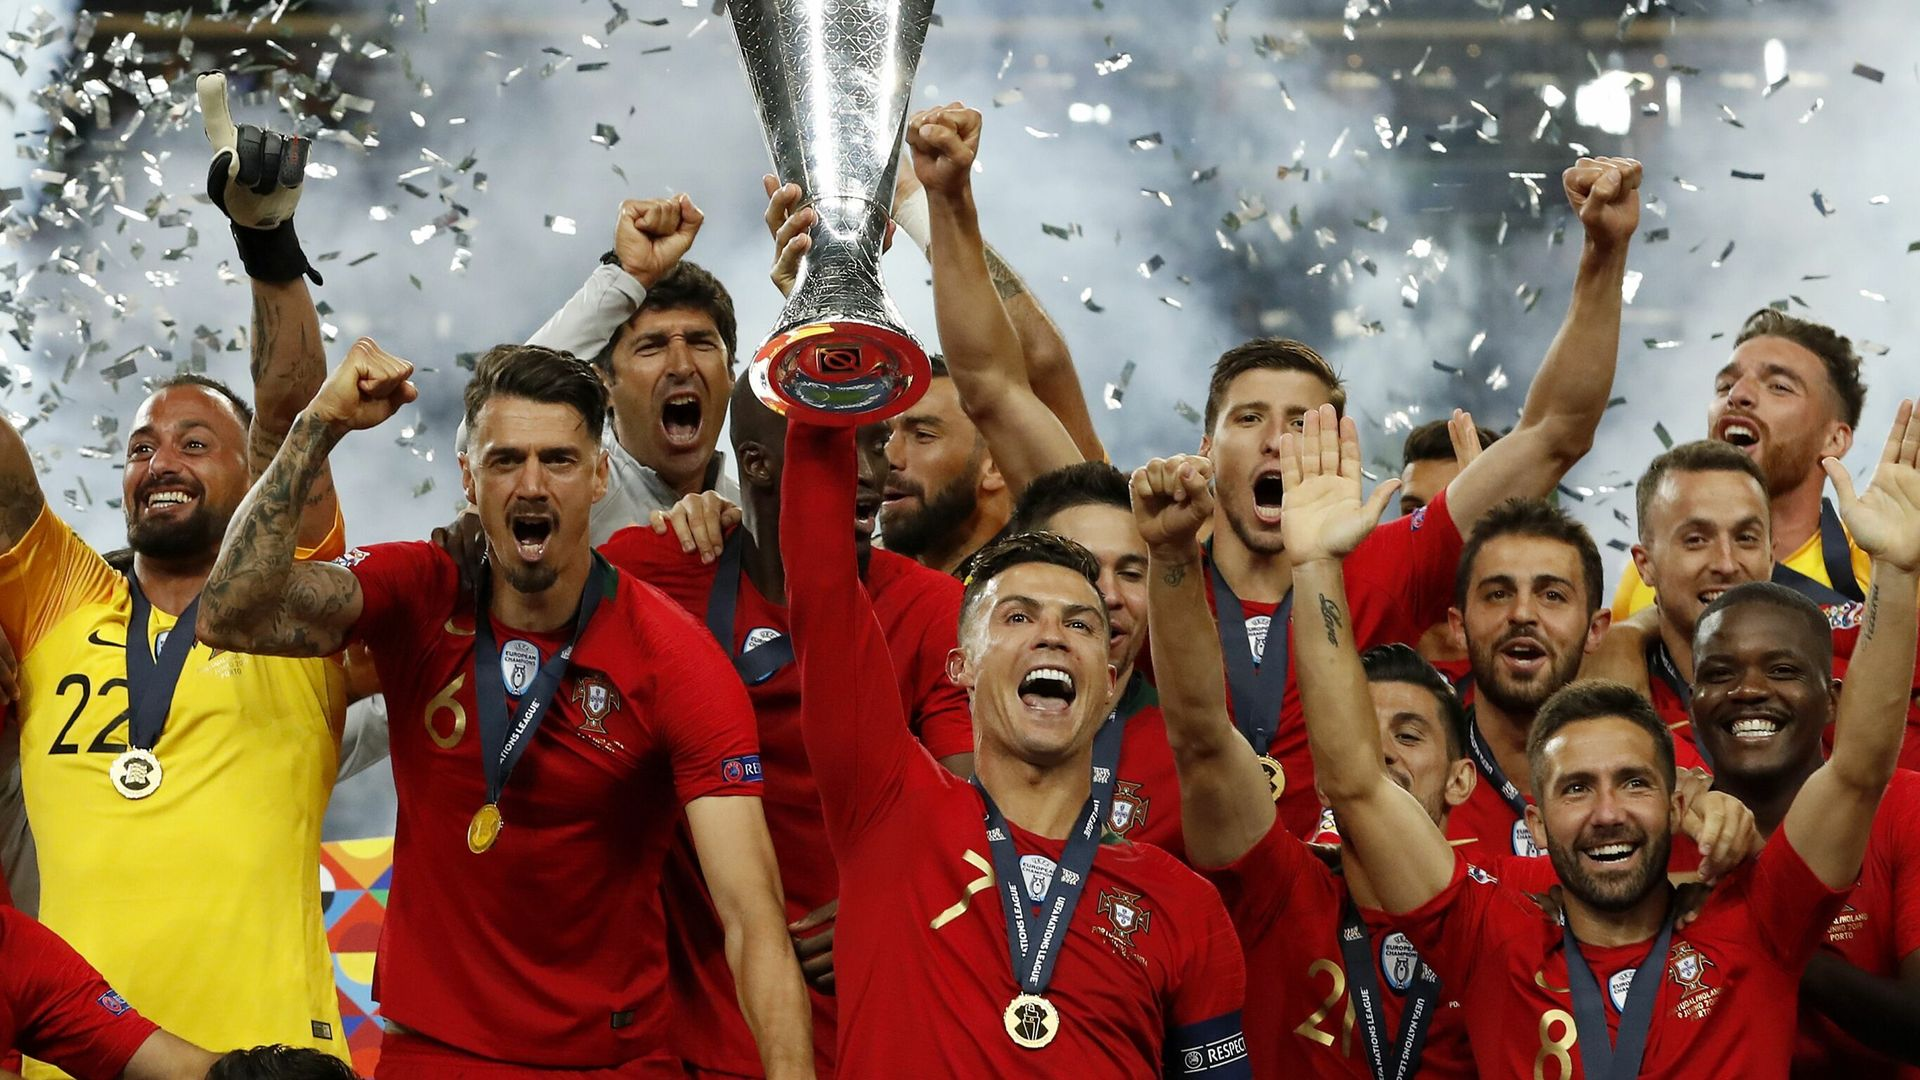 When are the Nations League finals?